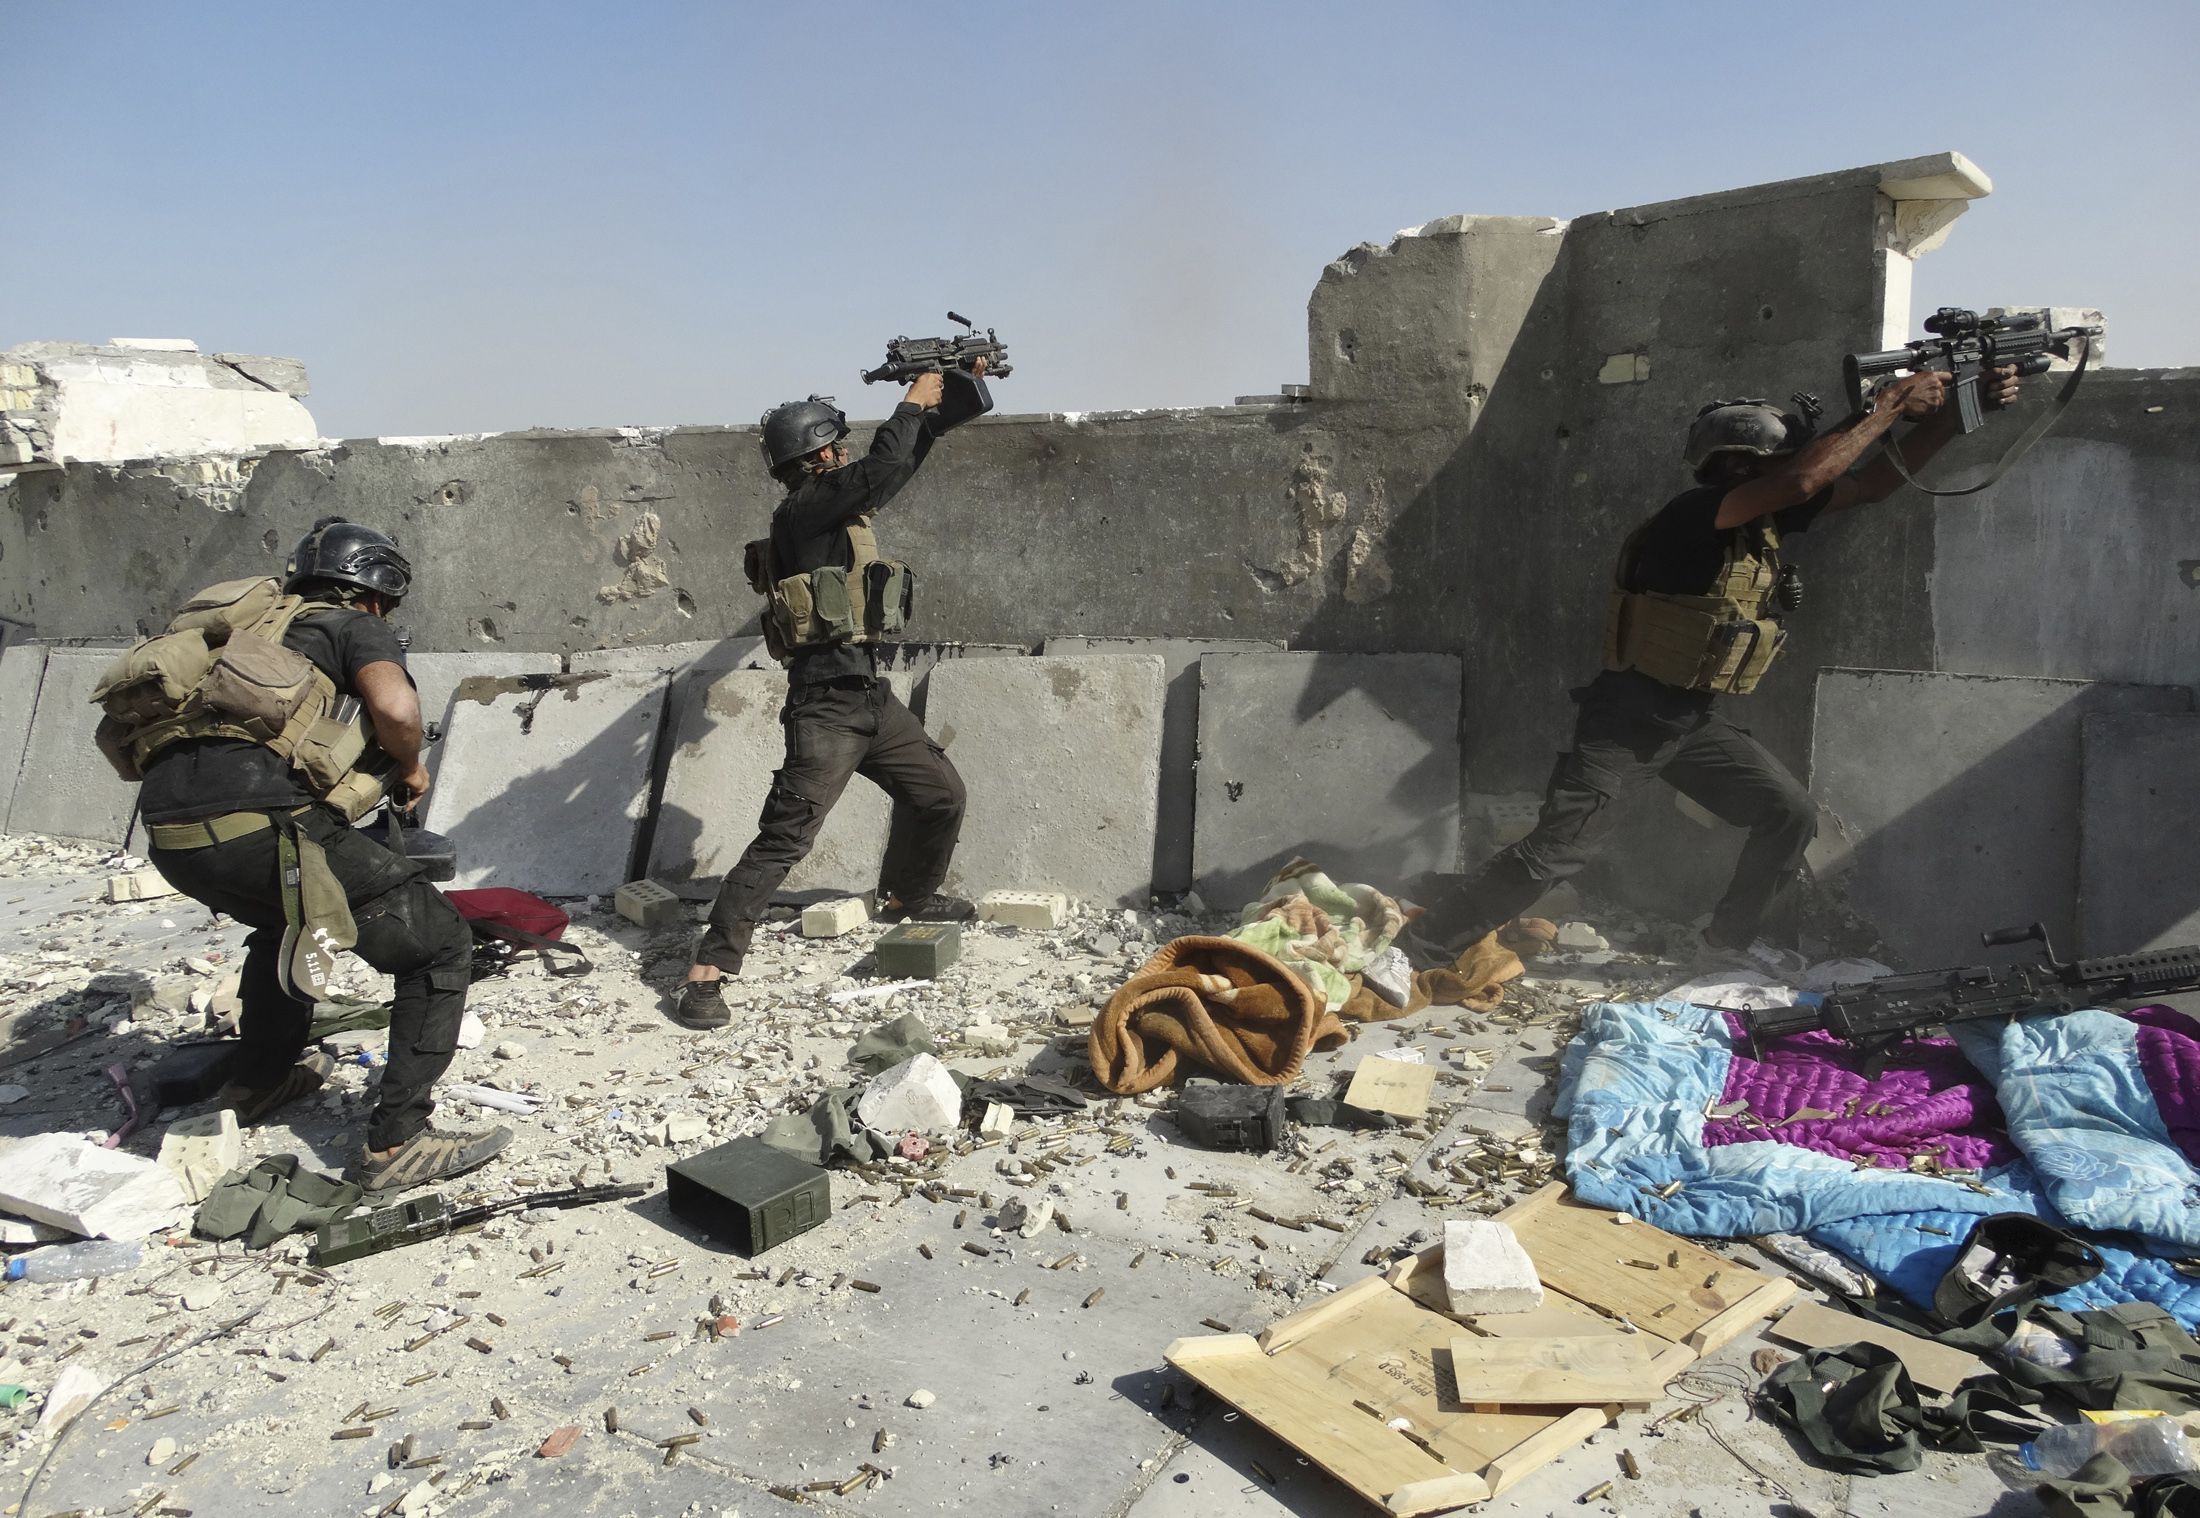 The fight against ISIS